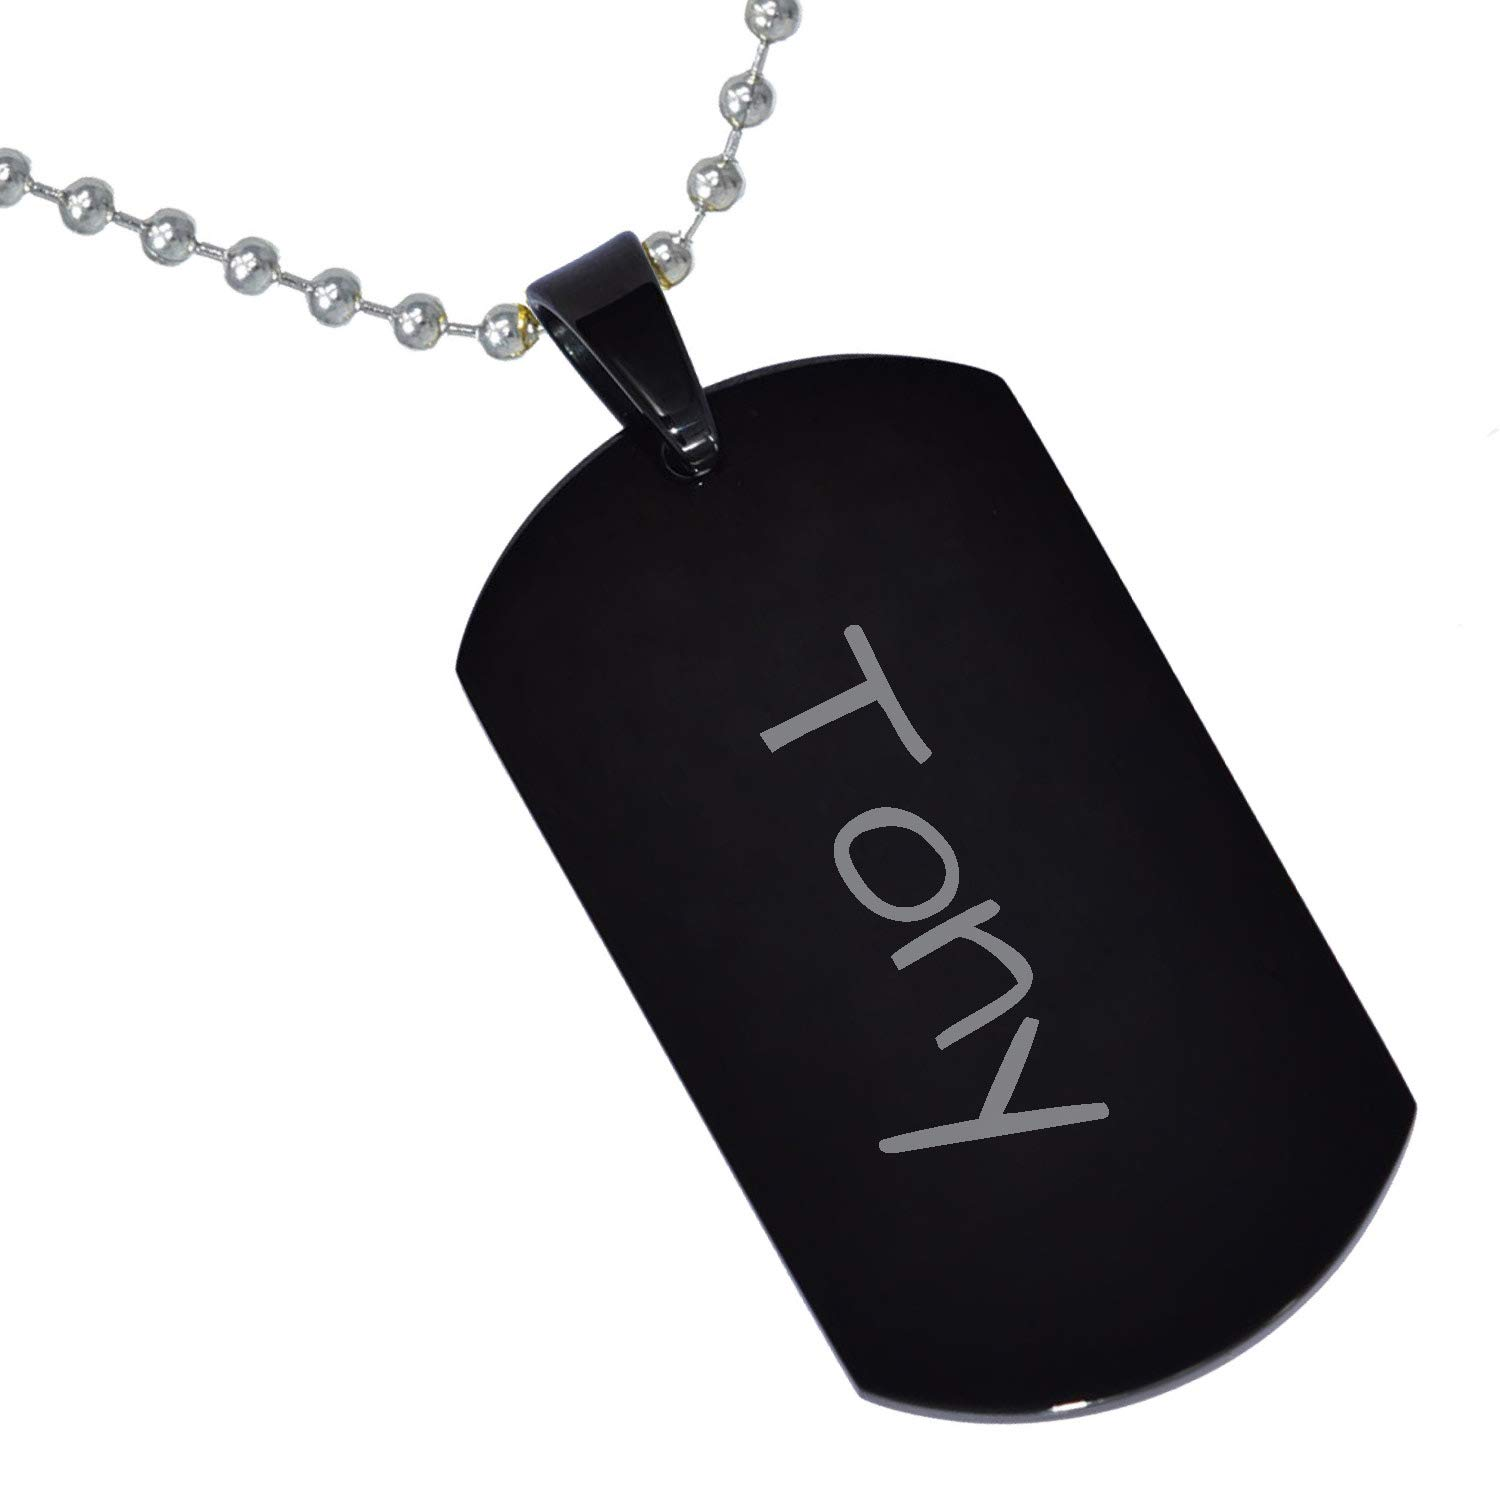 Stainless Steel Silver Gold Black Rose Gold Color Baby Name Tony Engraved Personalized Gifts For Son Daughter Boyfriend Girlfriend Initial Customizable Pendant Necklace Dog Tags 24 Ball Chain